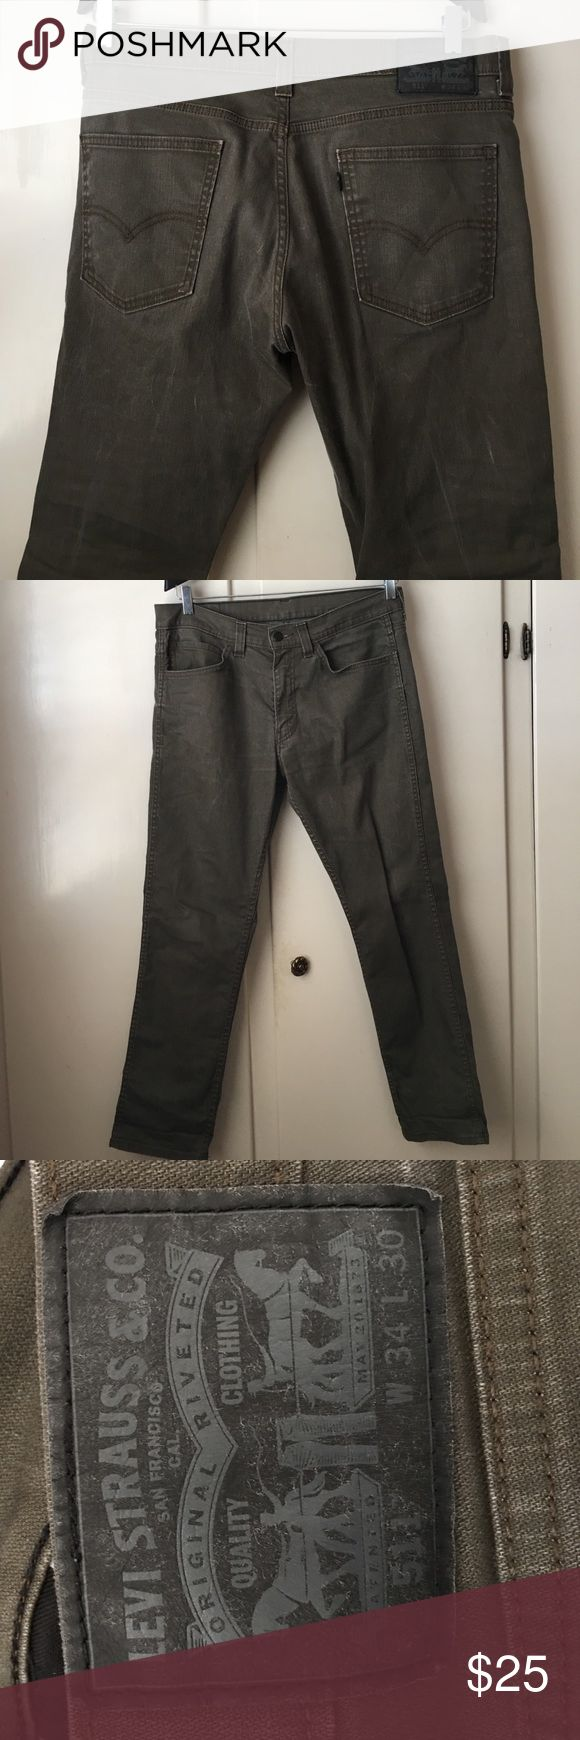 511 Levi's Men's Jeans Perfect condition Levi Jeans, 511 which is a straight/skinny leg. My husband doesn't wear these pants anymore but they're pretty much brand new. Size is a 34 x 30. No trades or PayPal. Thanks! Levi's Jeans Slim Straight